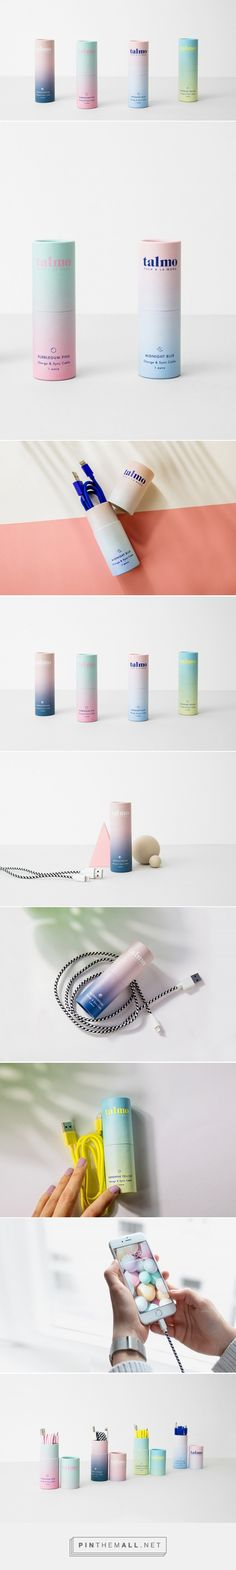 Talmo Design Cables - Mindsparkle Mag - created on Skincare Packaging, Luxury Packaging, Beauty Packaging, Cosmetic Packaging, Brand Packaging, Coffee Packaging, Pretty Packaging, Blog Design, Packaging Design Inspiration